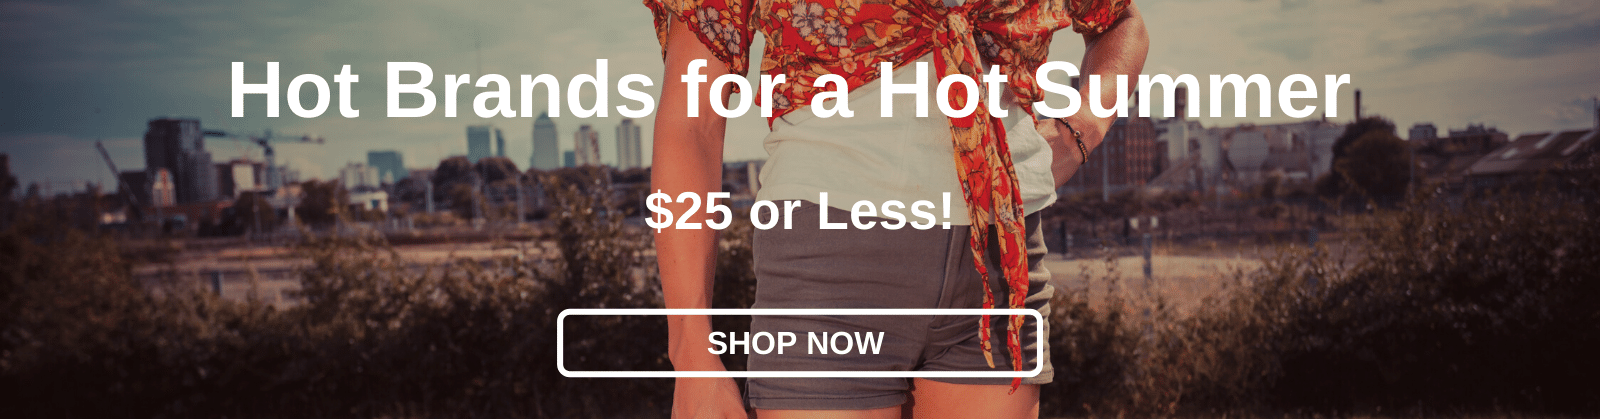 Hot Brands for a Hot Summer $25 or Less! [Shop Now]